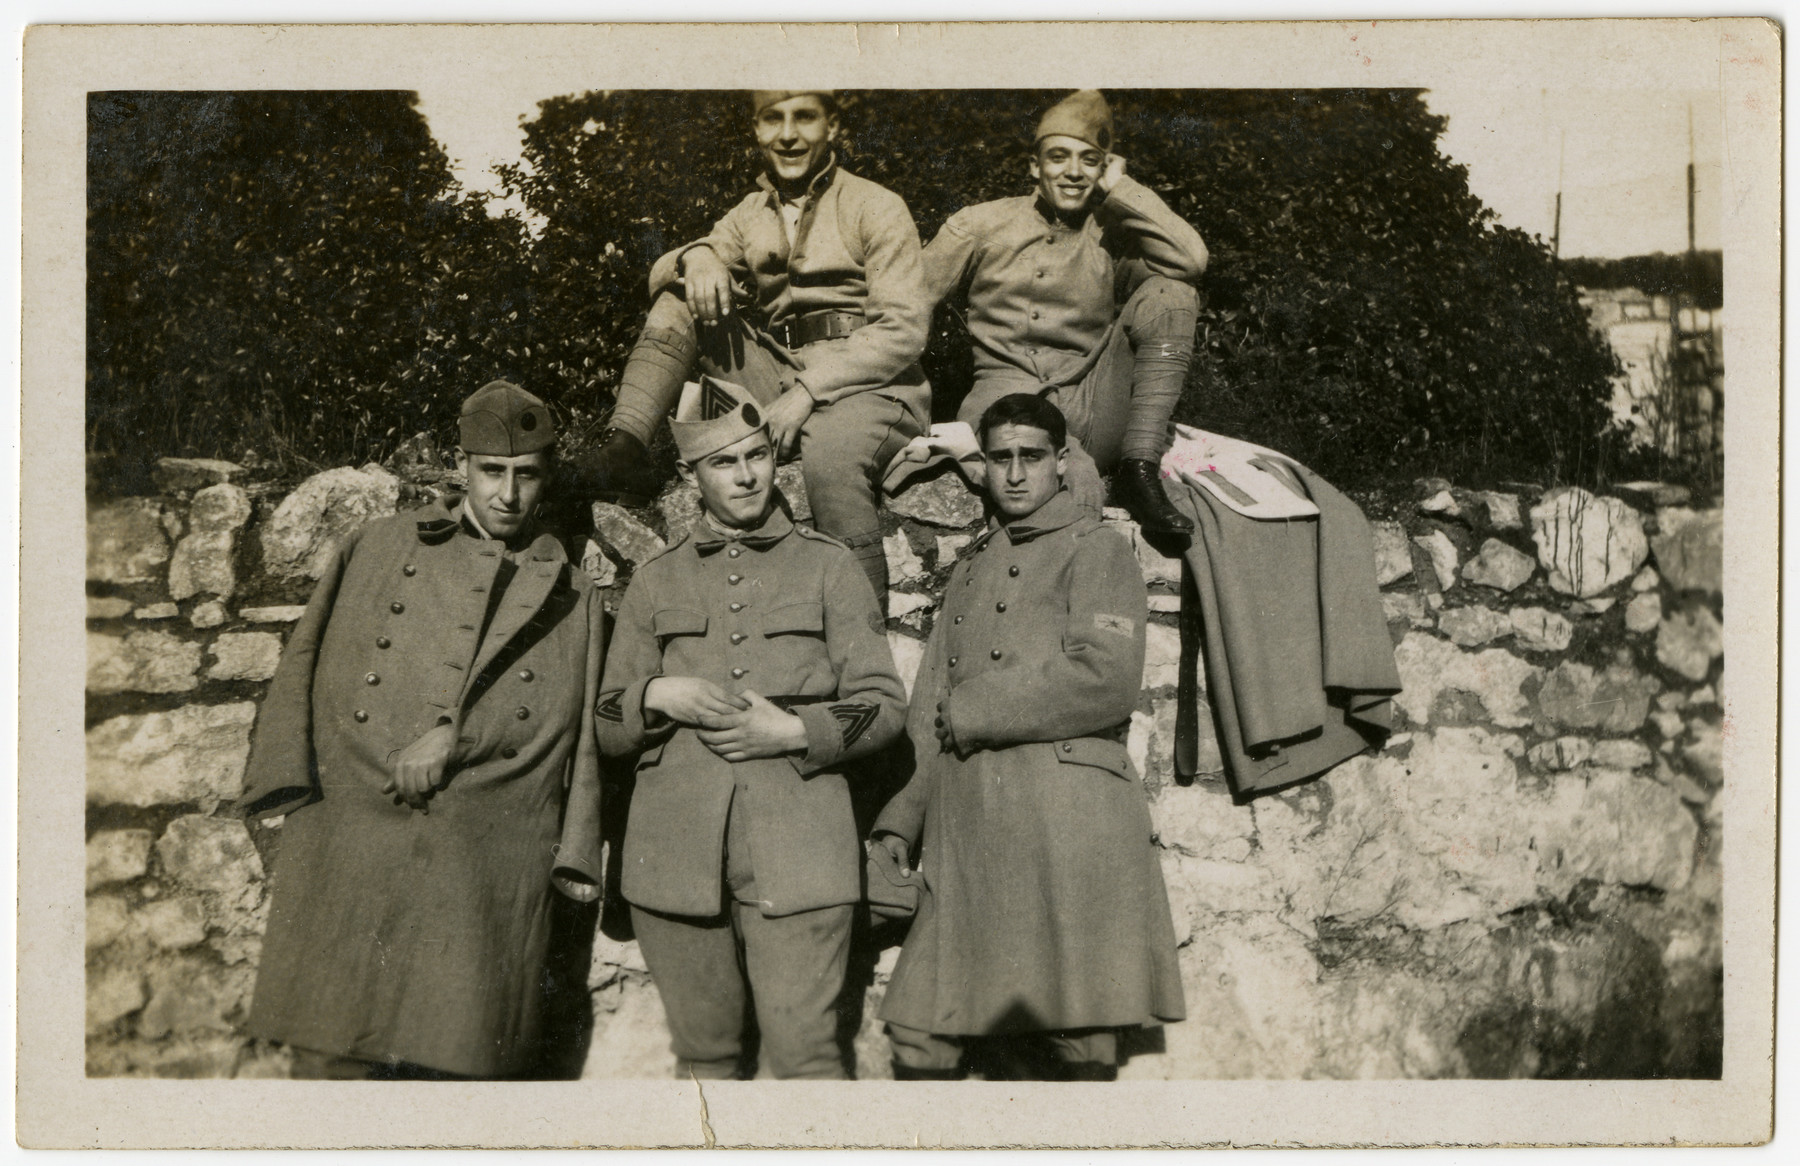 Albert Benichou, an Algerian Jew serving in the French army, poses with other recruits while in training in Tunisia.  Albert Benichou is pictured in the front row on the far right.